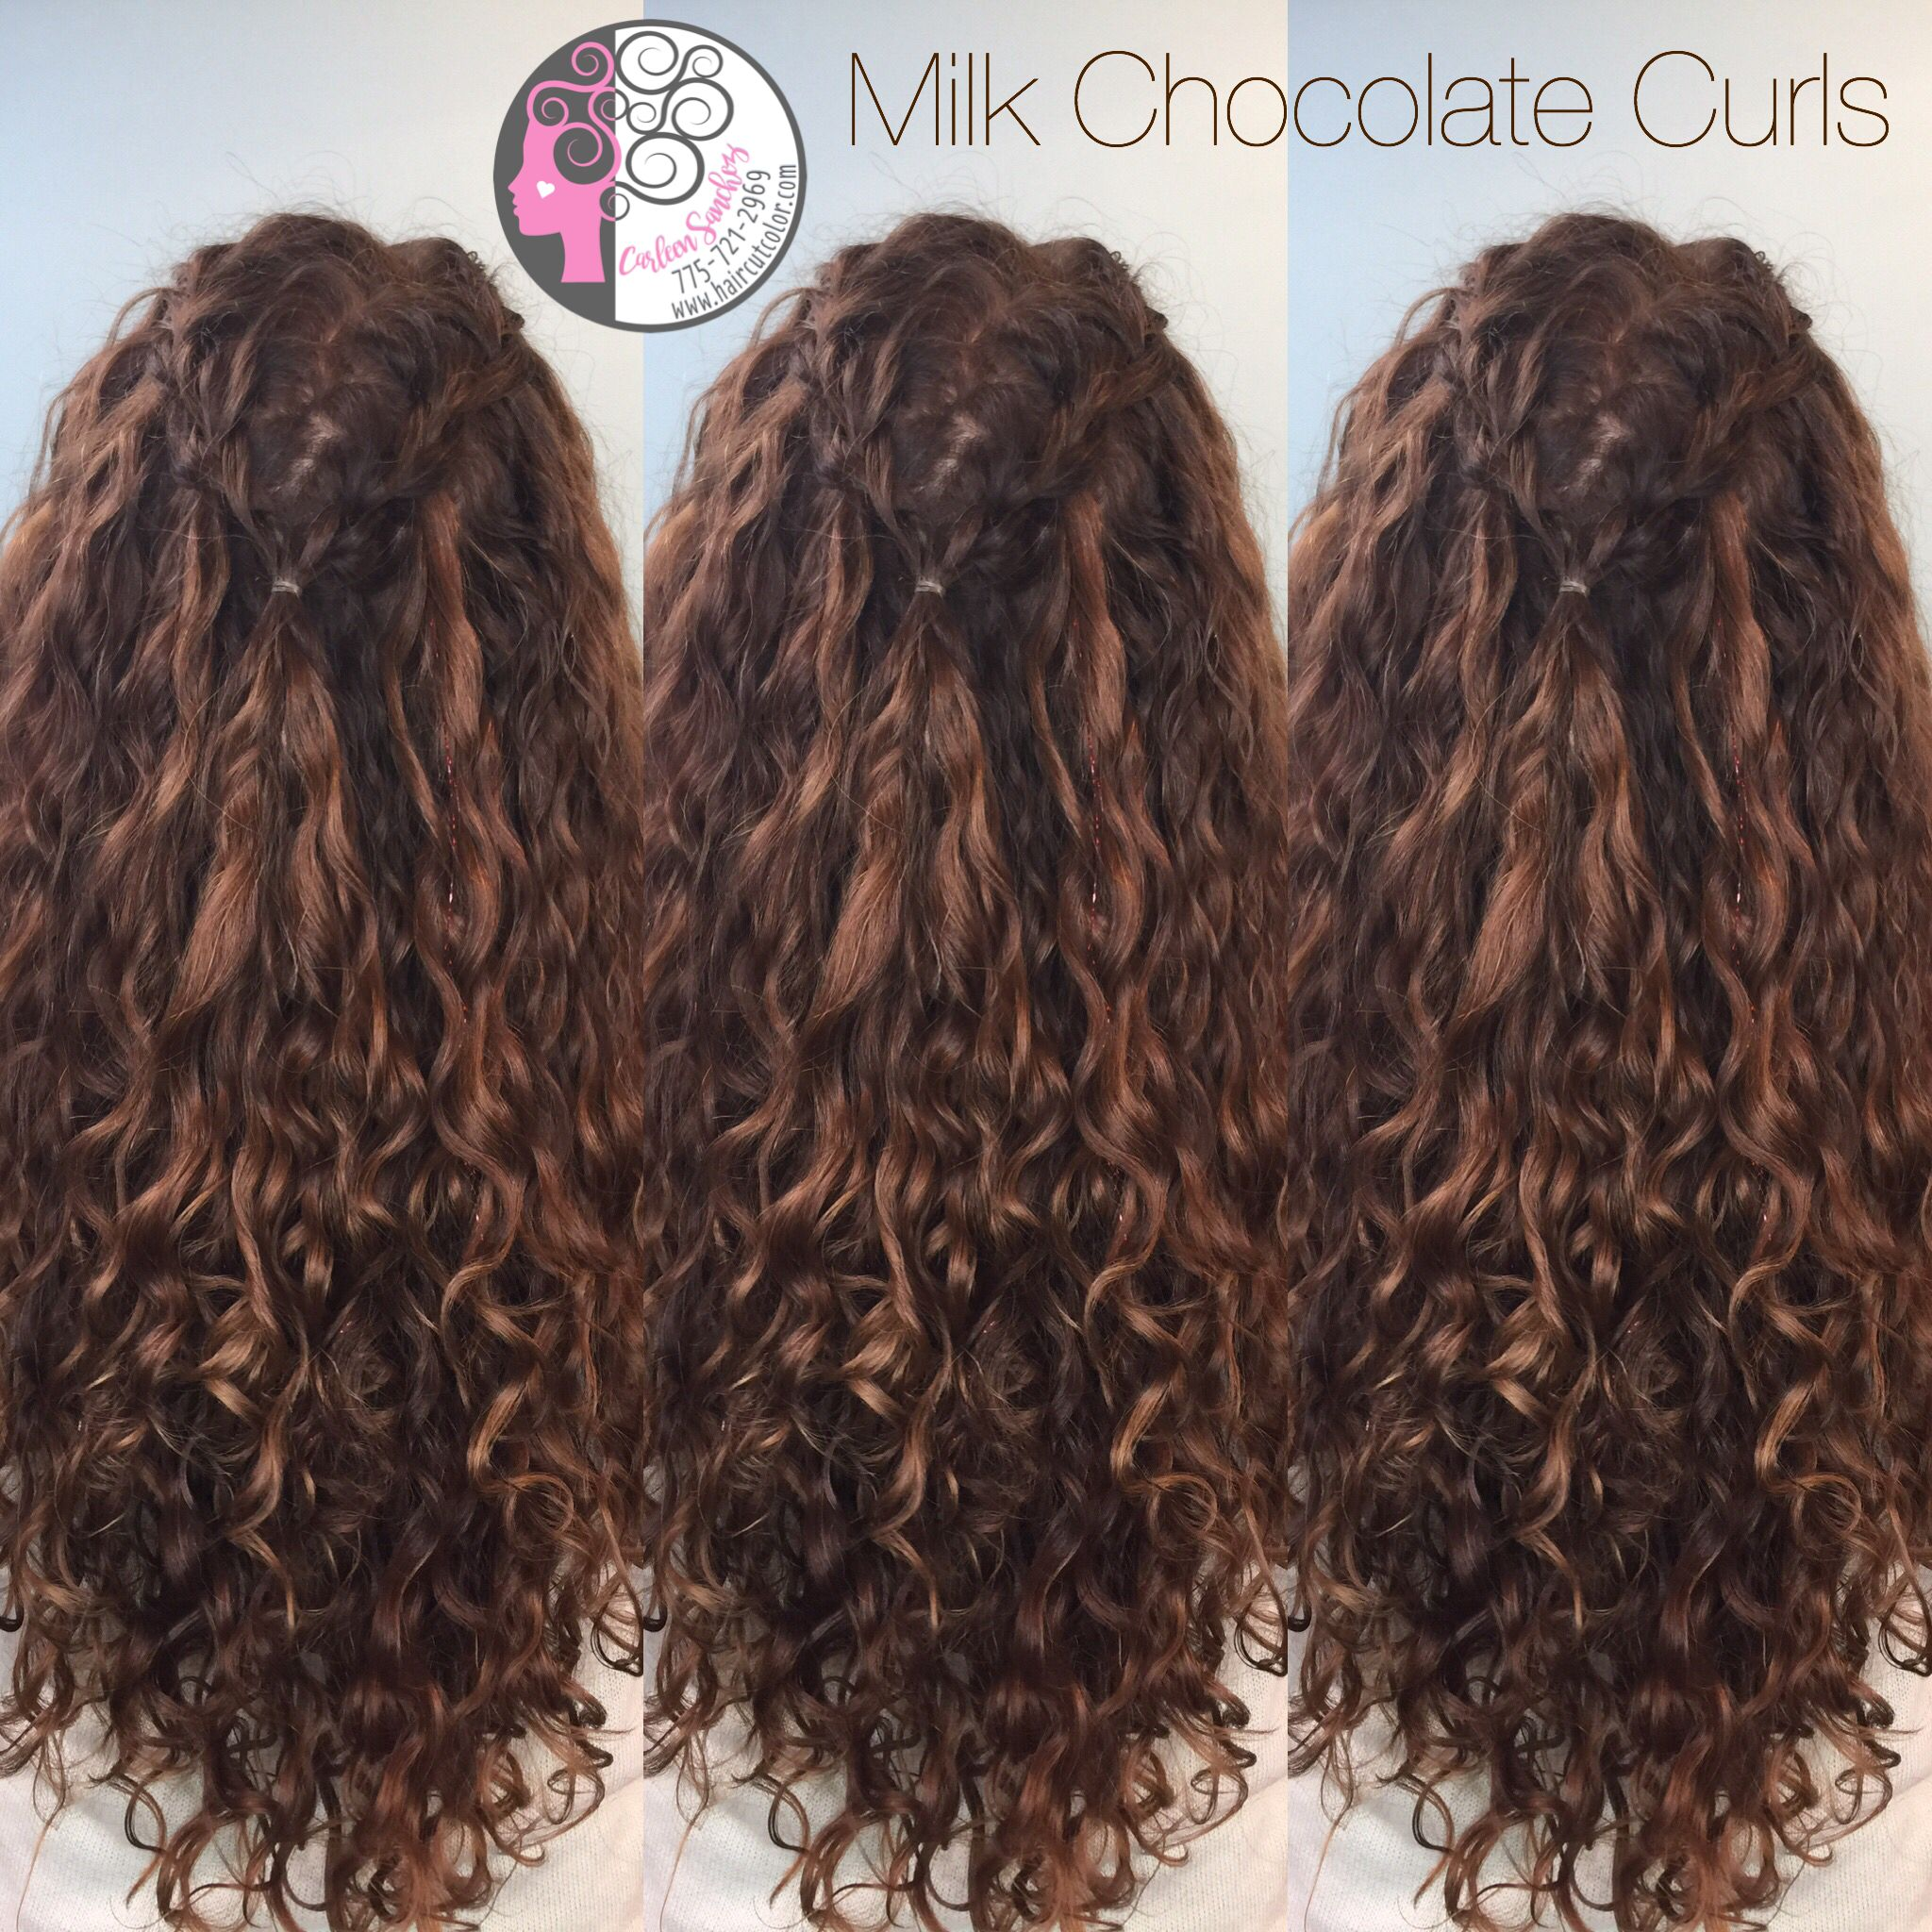 Chocolate Balayage On Naturally Curly Hair By Carleen Sanchez Nevada S Curl Expert Www Haircut Curly Hair Styles Curly Hair Styles Naturally Colored Curly Hair